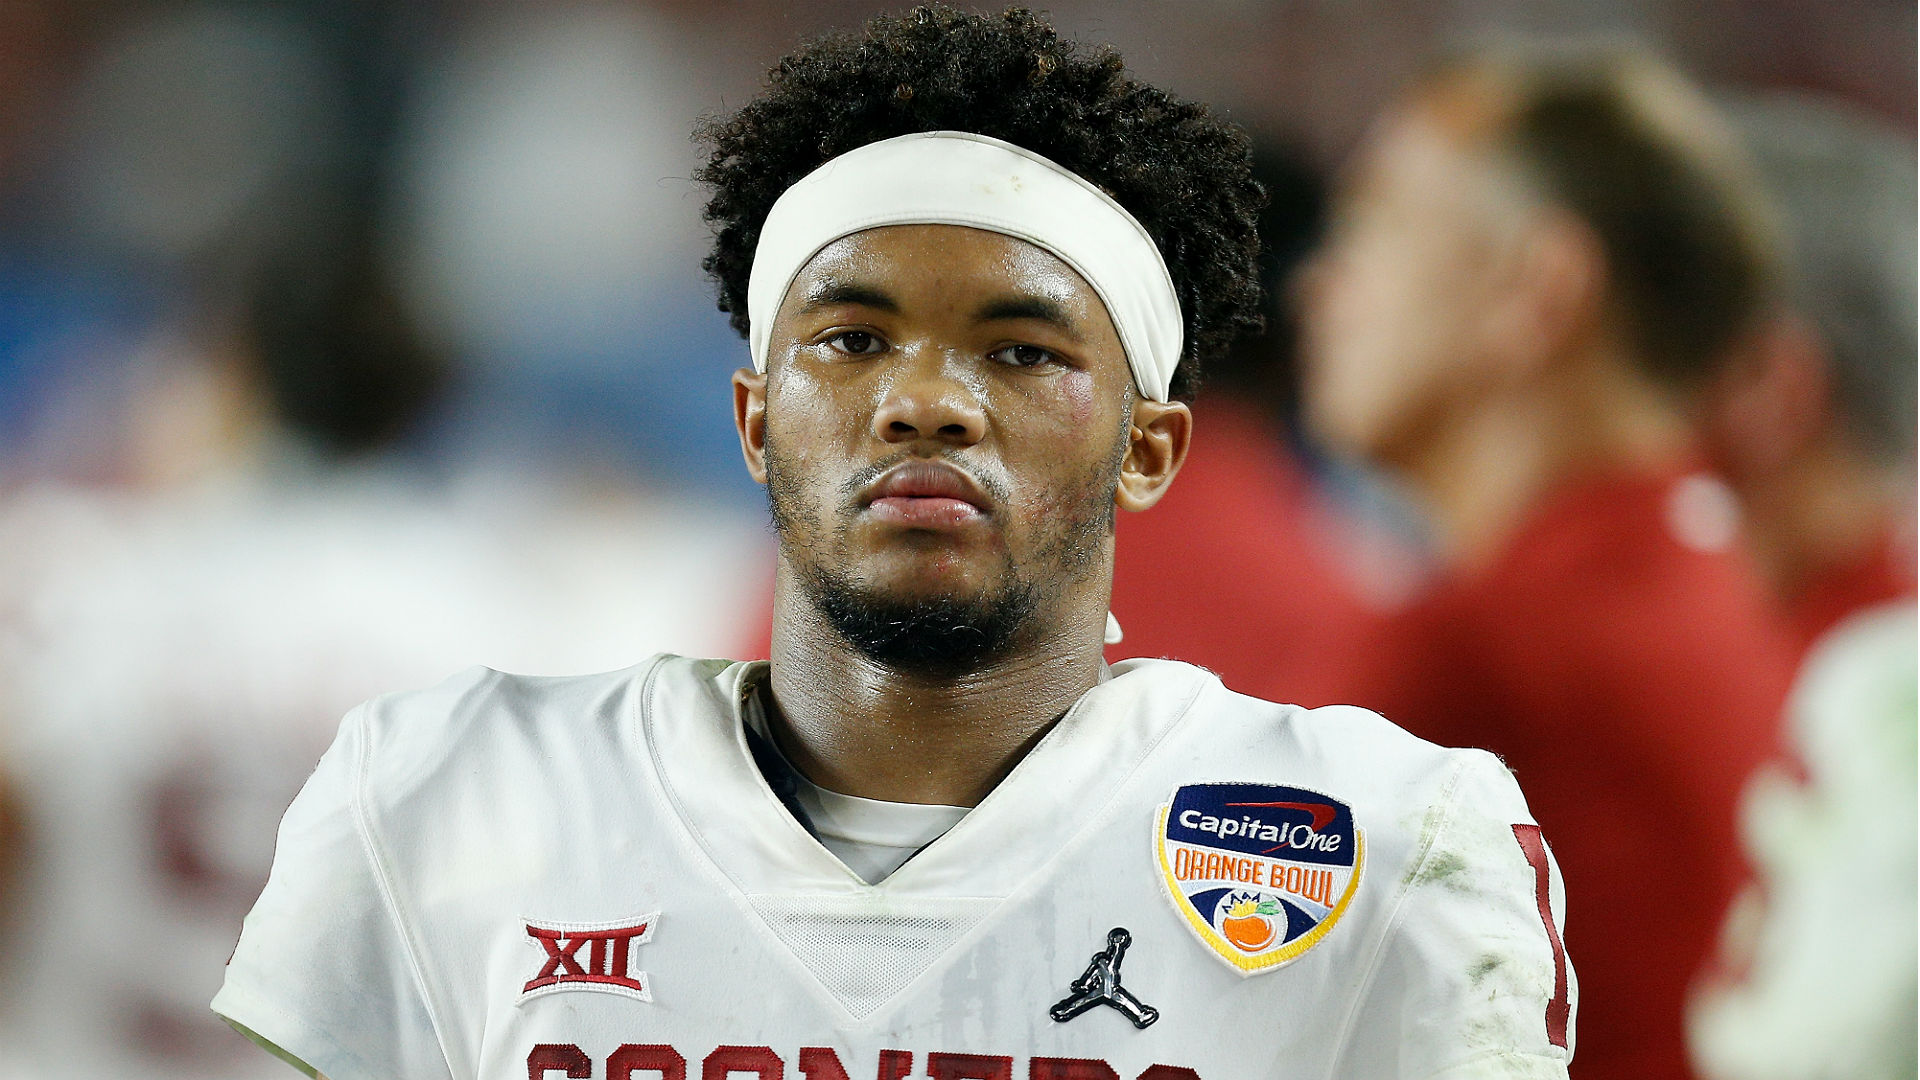 Saquon Barkley Thinks Kyler Murray Will Be Great In The NFL